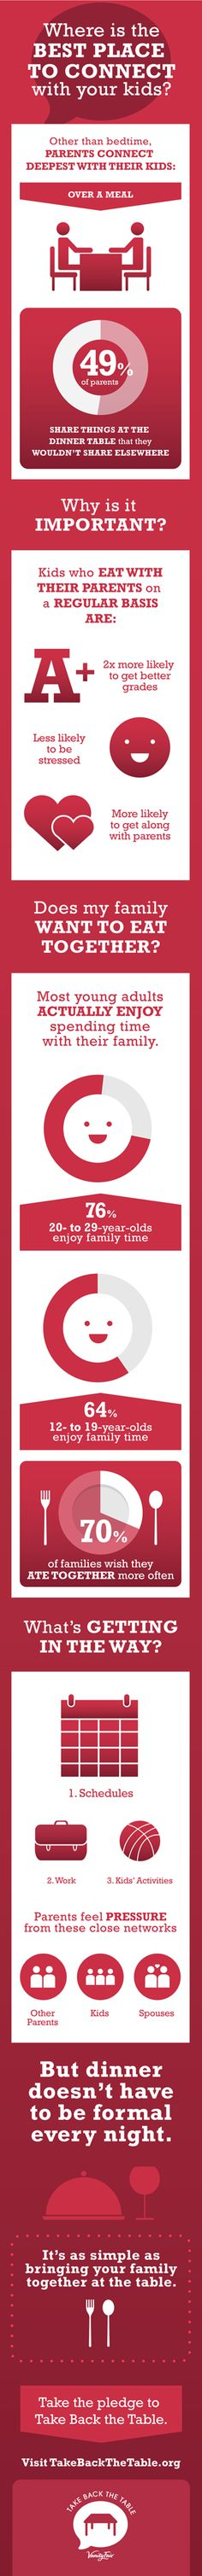 Most young adults actually enjoy spending time with their family. See the benefits of how eating meals together can help you better connect with your kids. (Source: Take Back The Table Survey, Vanity Fair Napkins 2015)